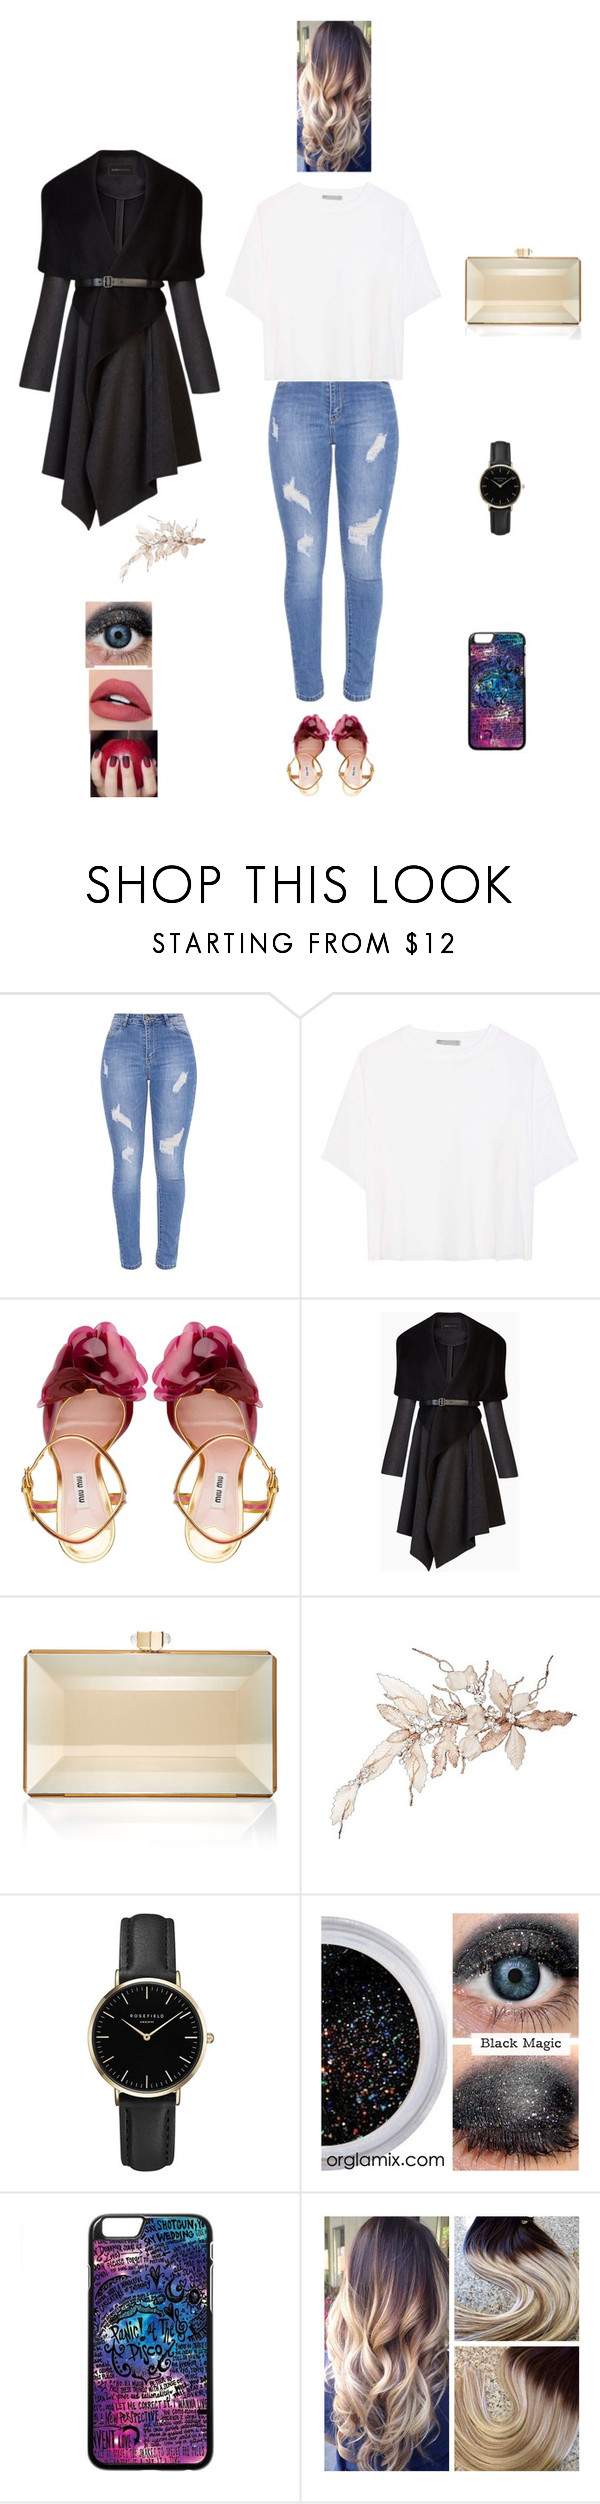 """""""K B M T L"""" by queen-kaitlyn ❤ liked on Polyvore featuring Vince, Miu Miu, BCBGMAXAZRIA, Judith Leiber and ROSEFIELD"""